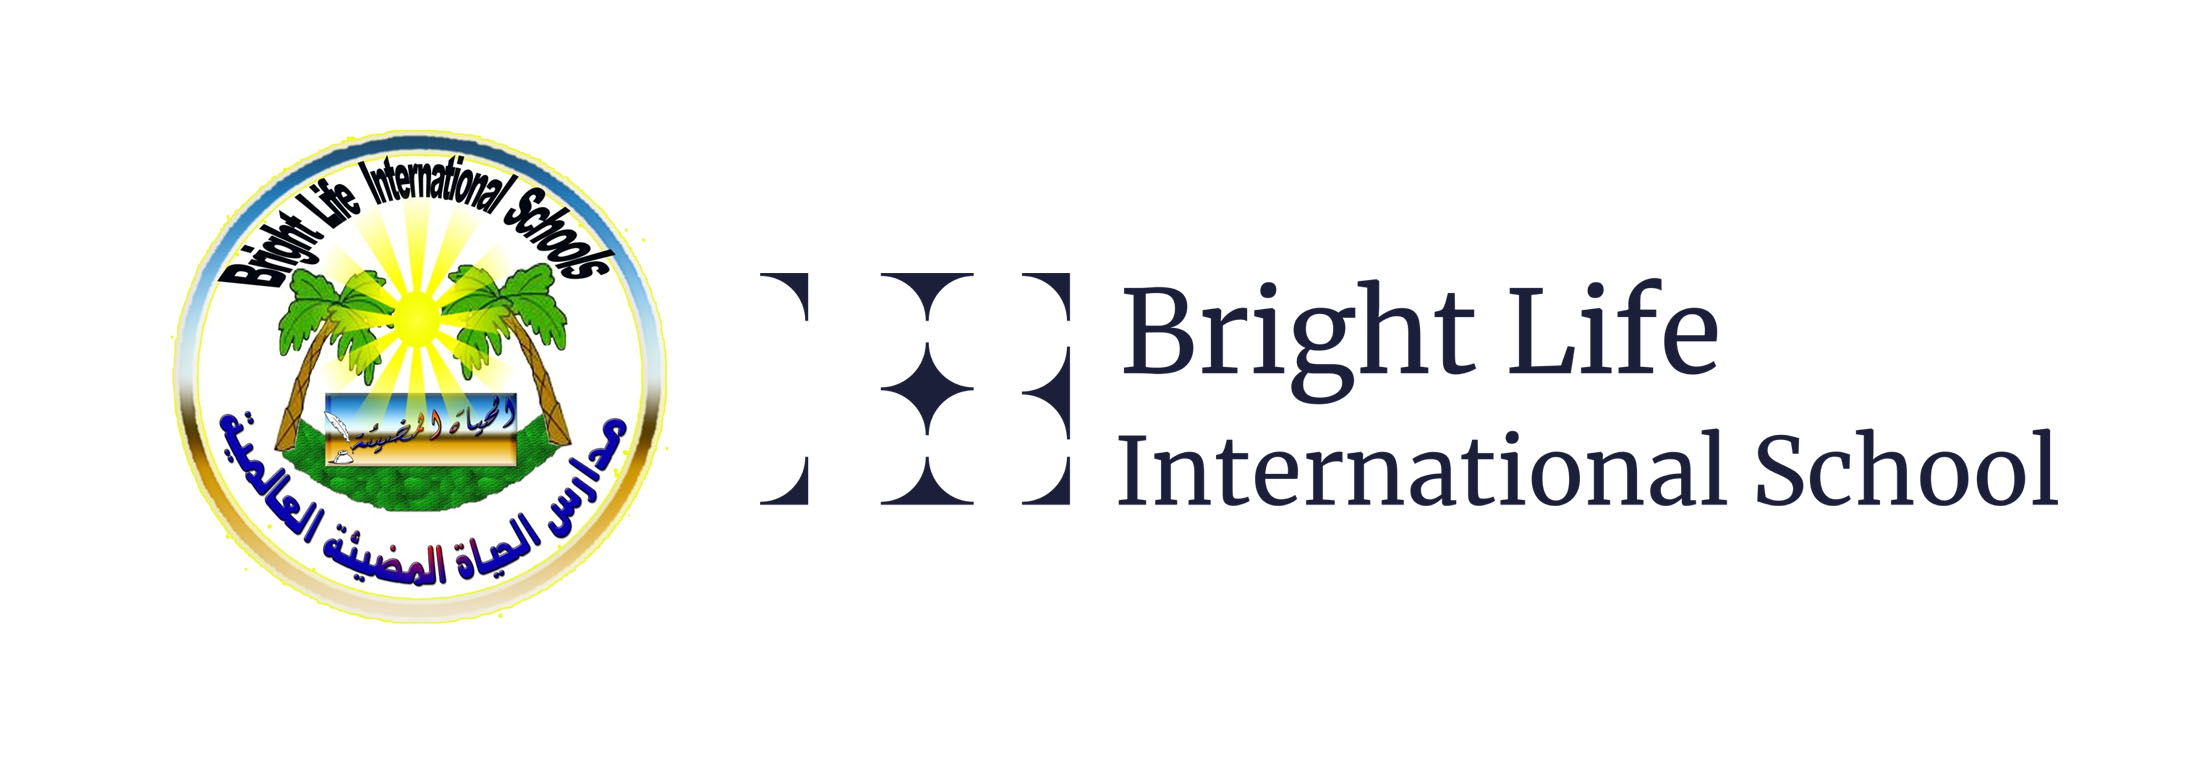 Bright Life International School